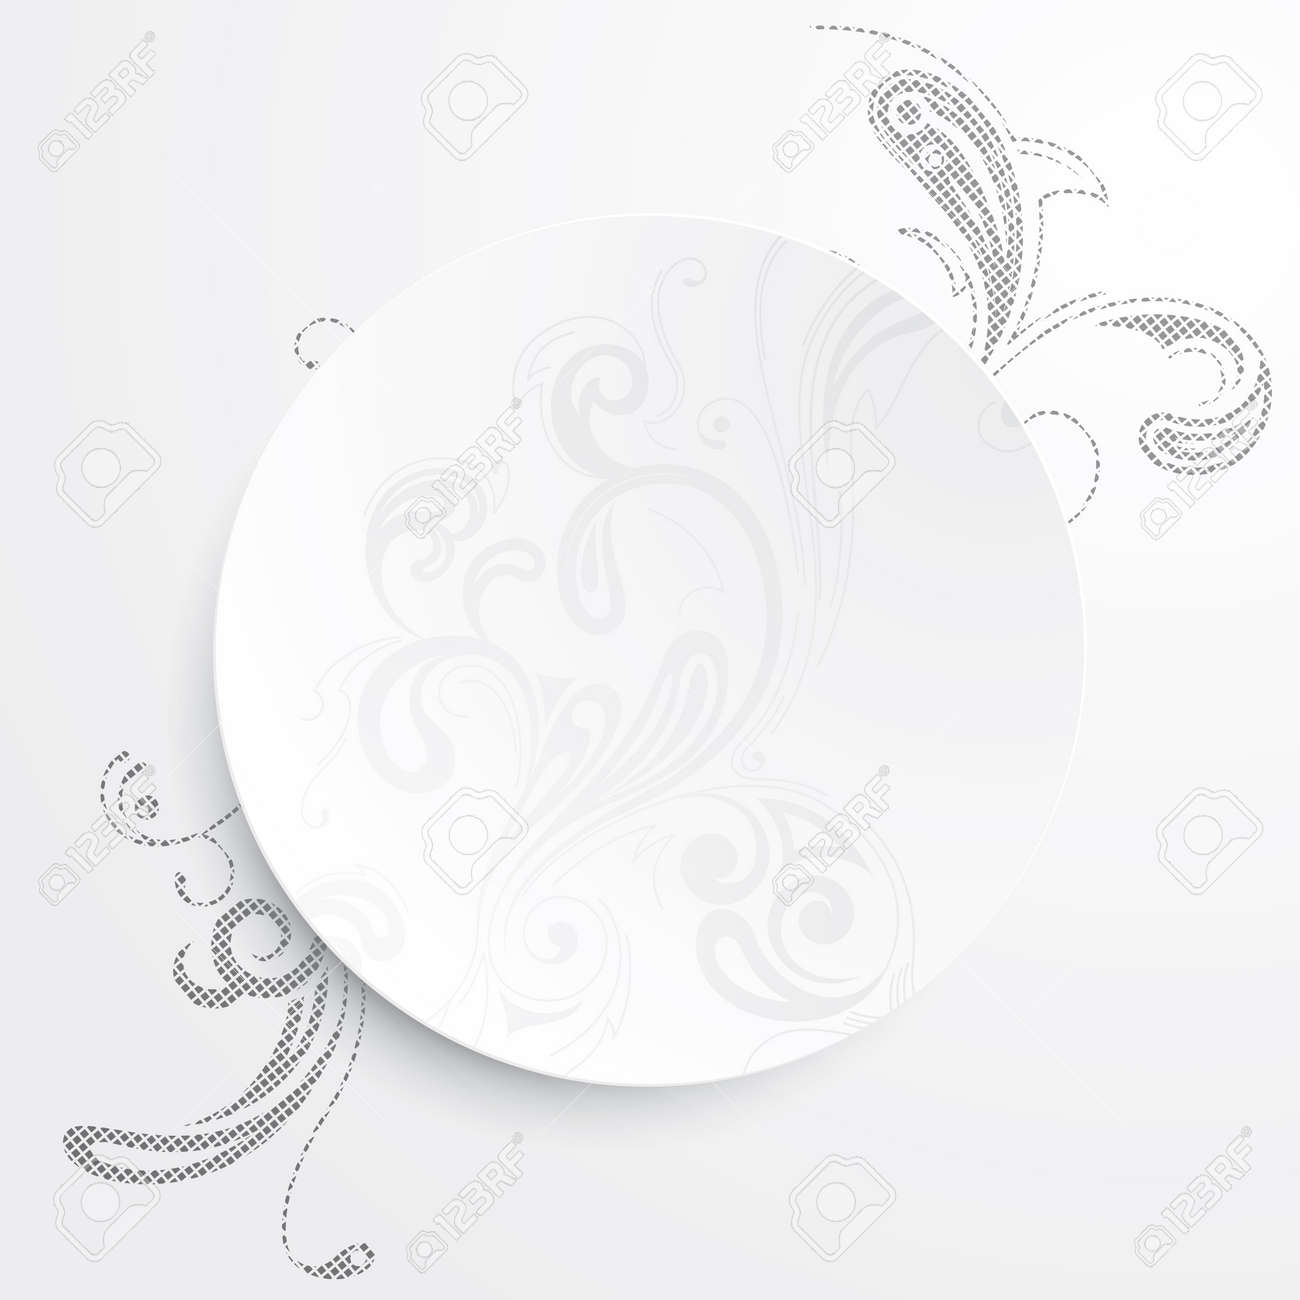 Vector illustration of a black and white background Stock Vector - 17697239